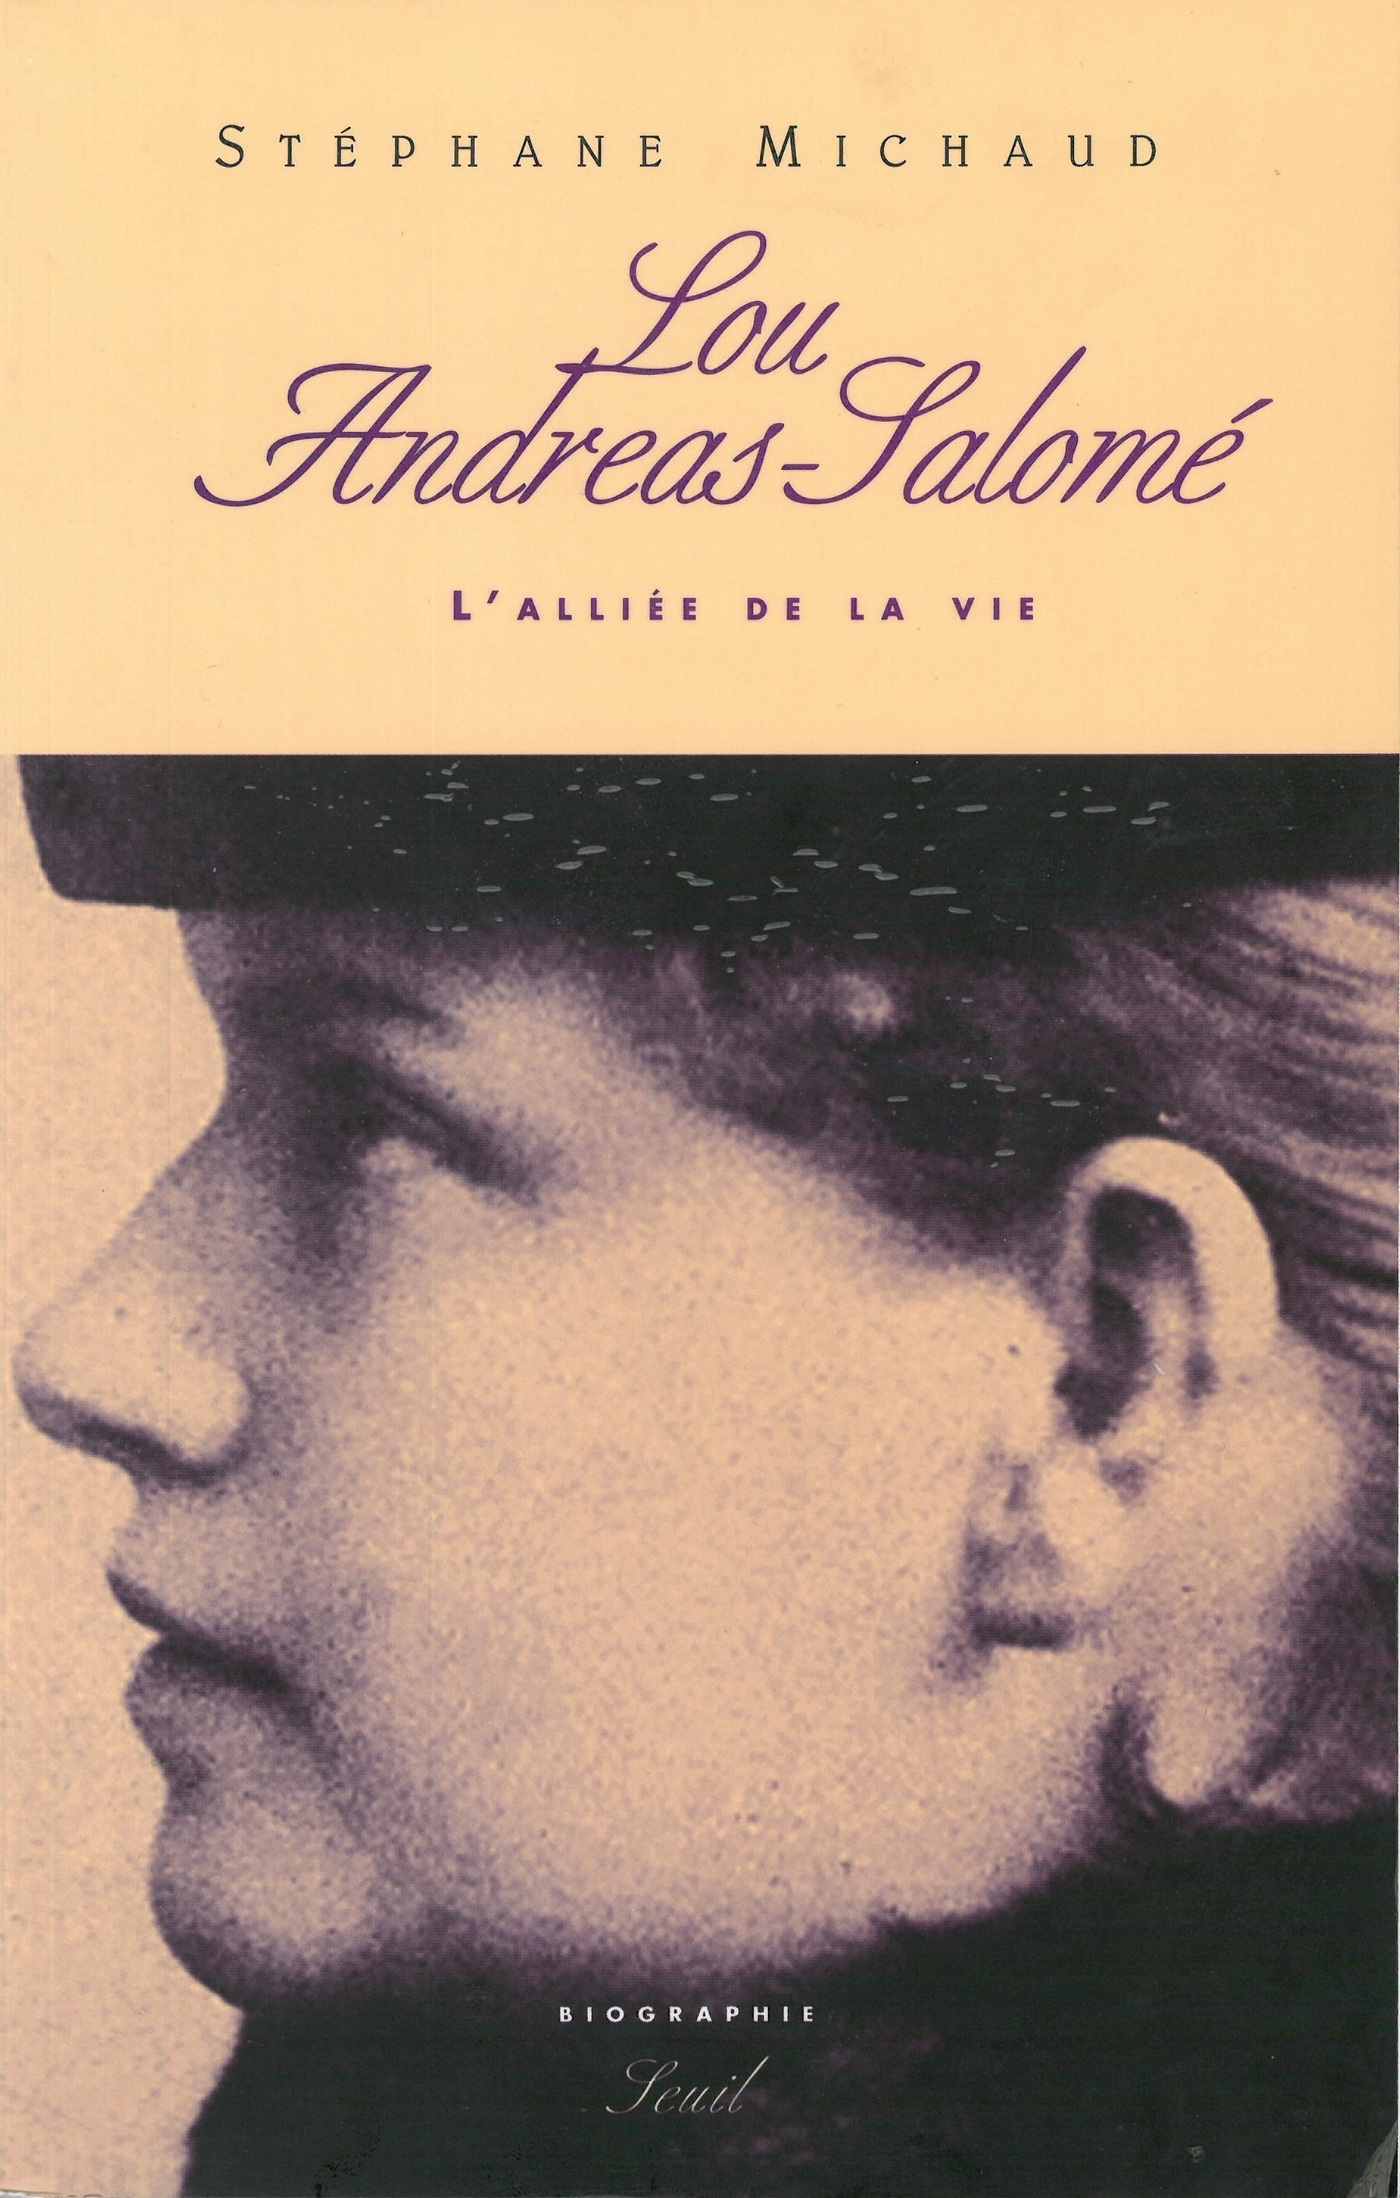 Lou Andreas-Salomé - L'alliée de la vie. Biographie